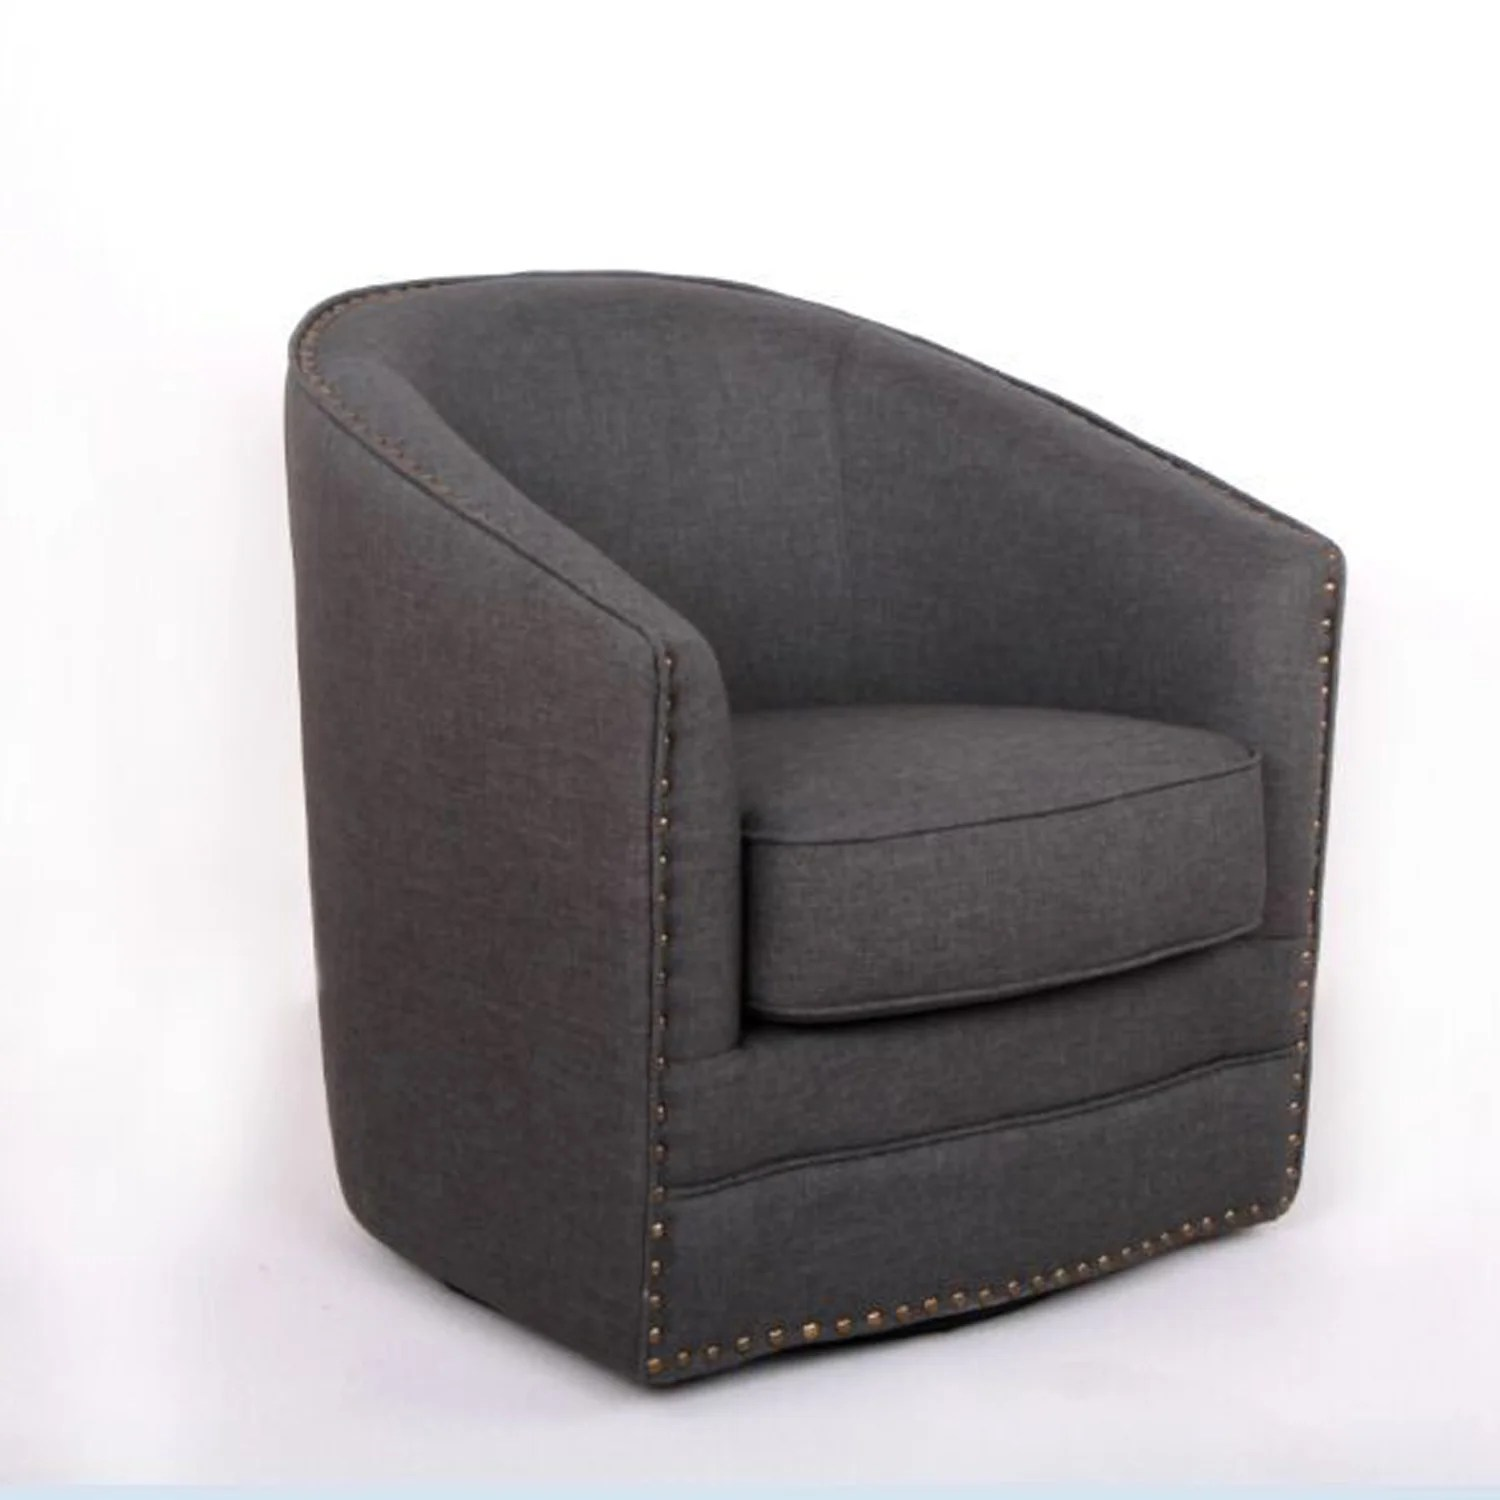 Upholstered Glider Chair Privacy Policy